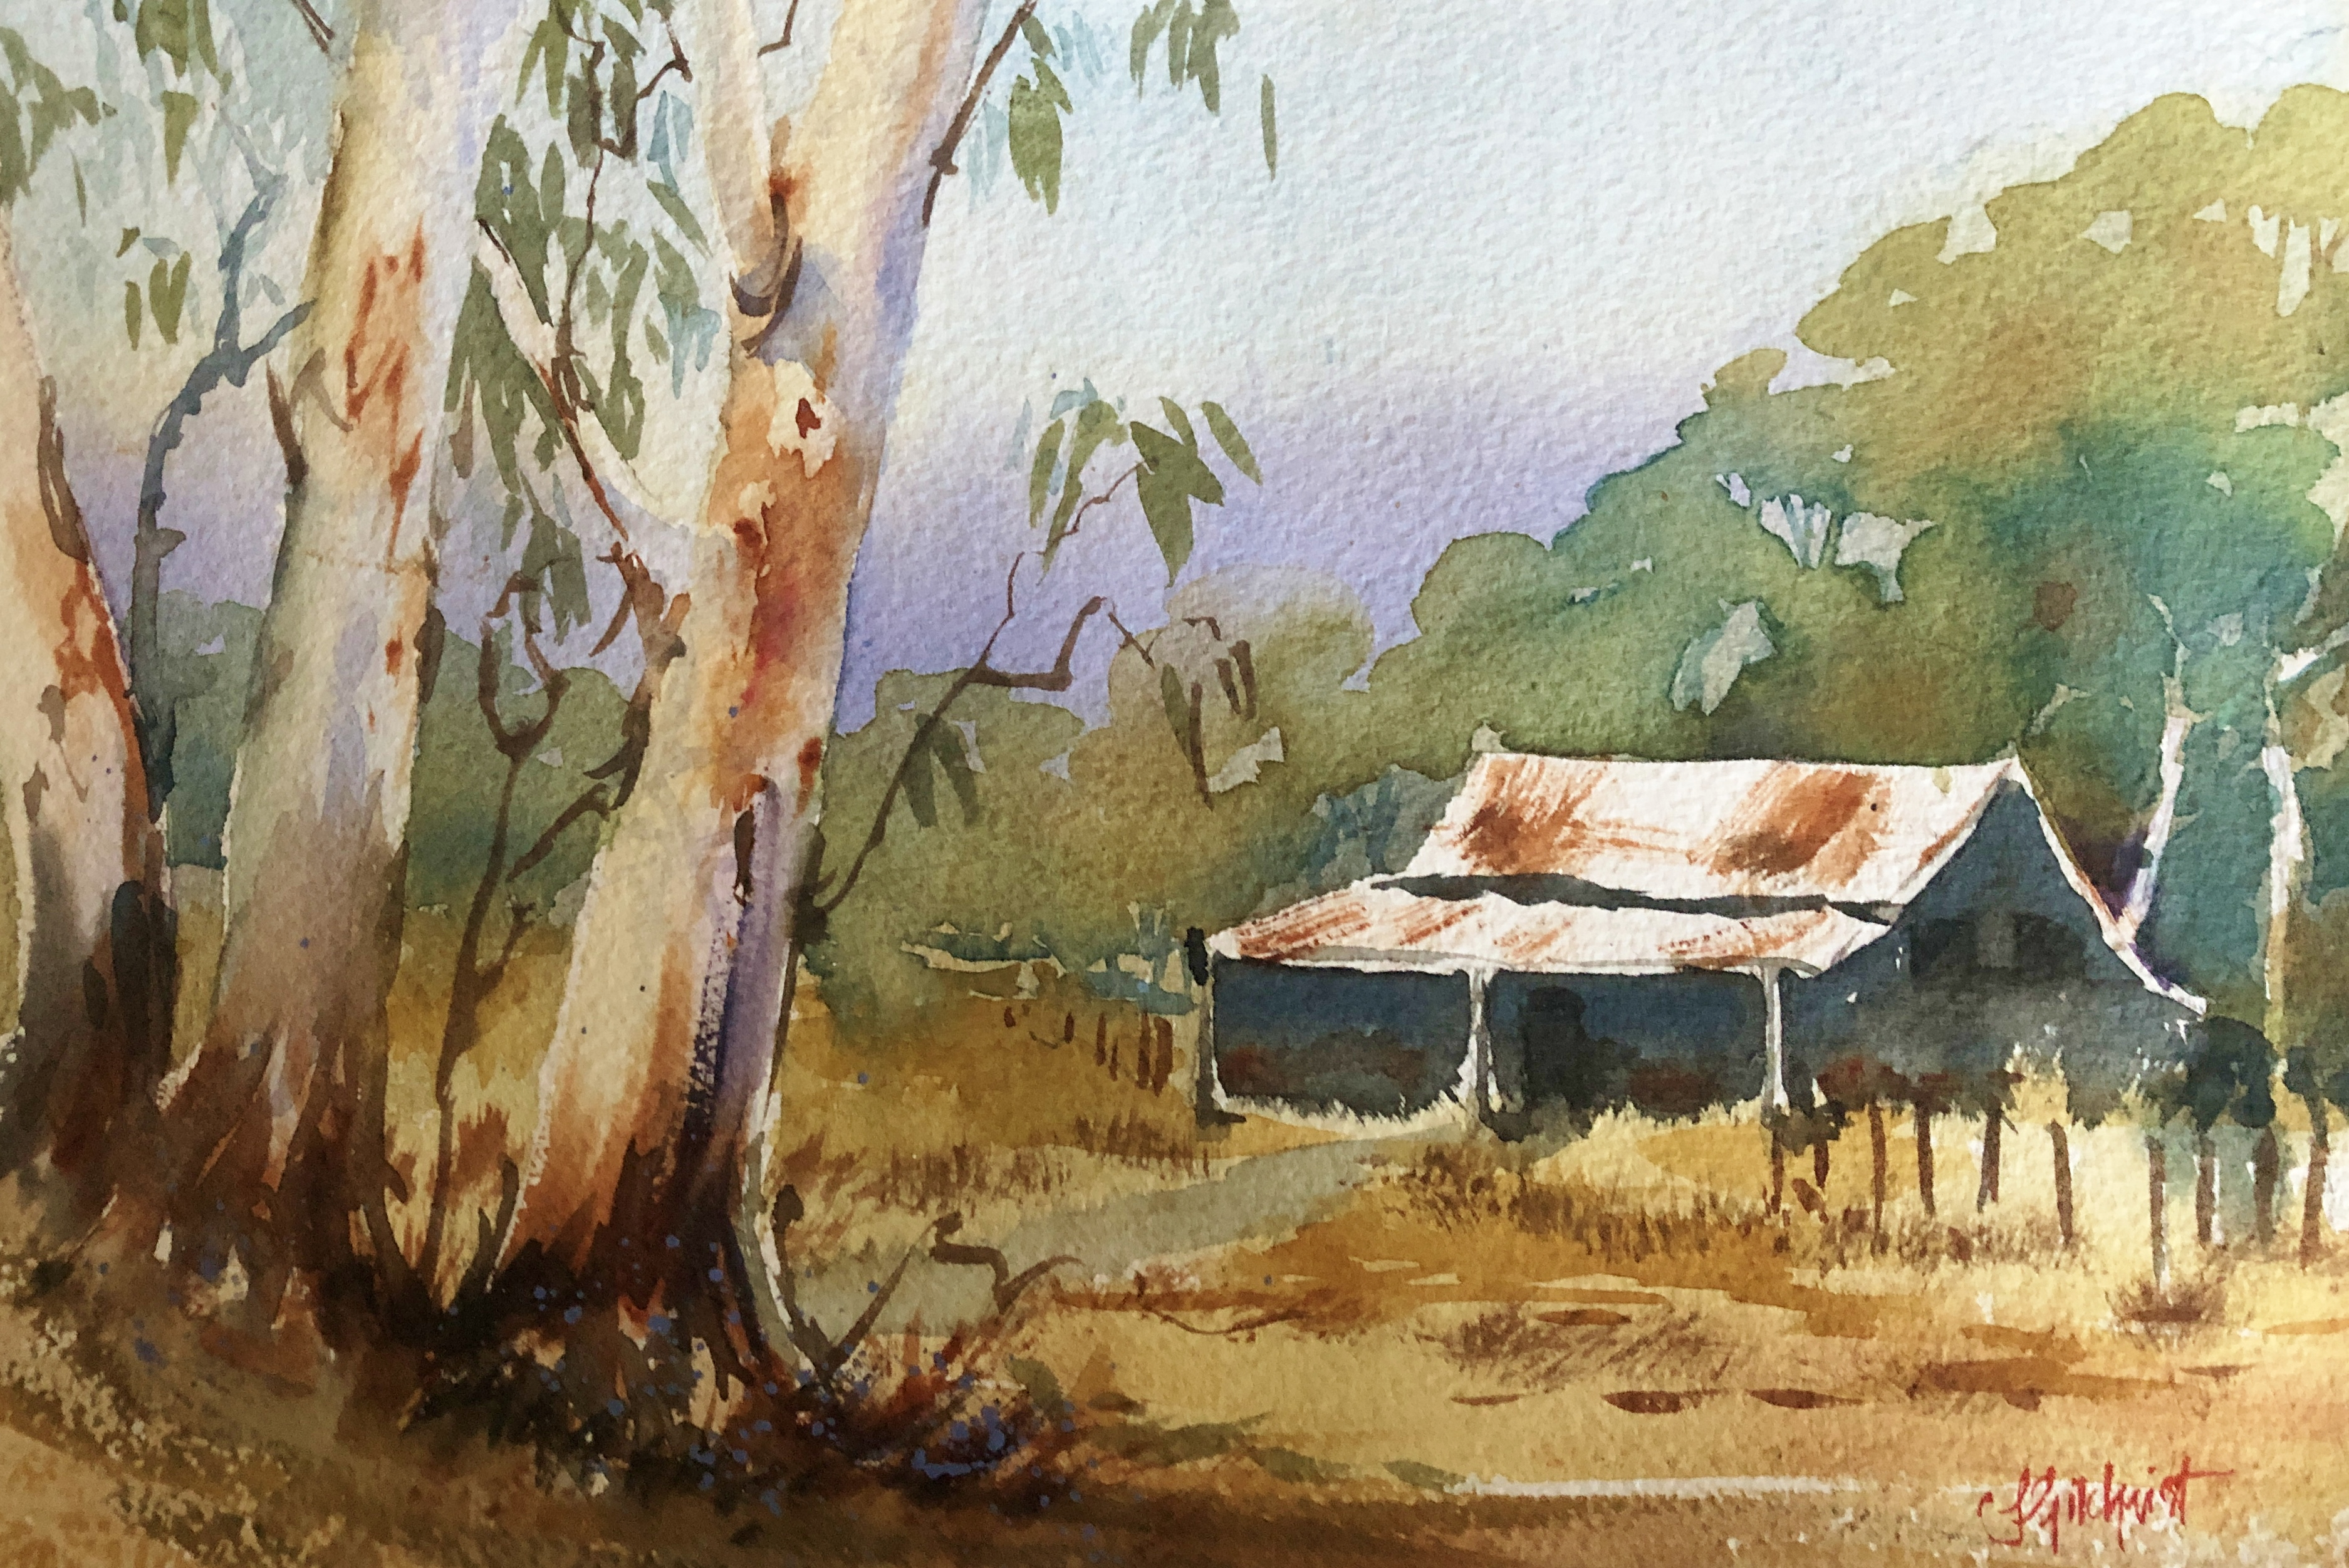 Watercolour Painting done in Online course of Australian Bush shack, by Jenny Gilchrist and Northern Beaches Watercolour.